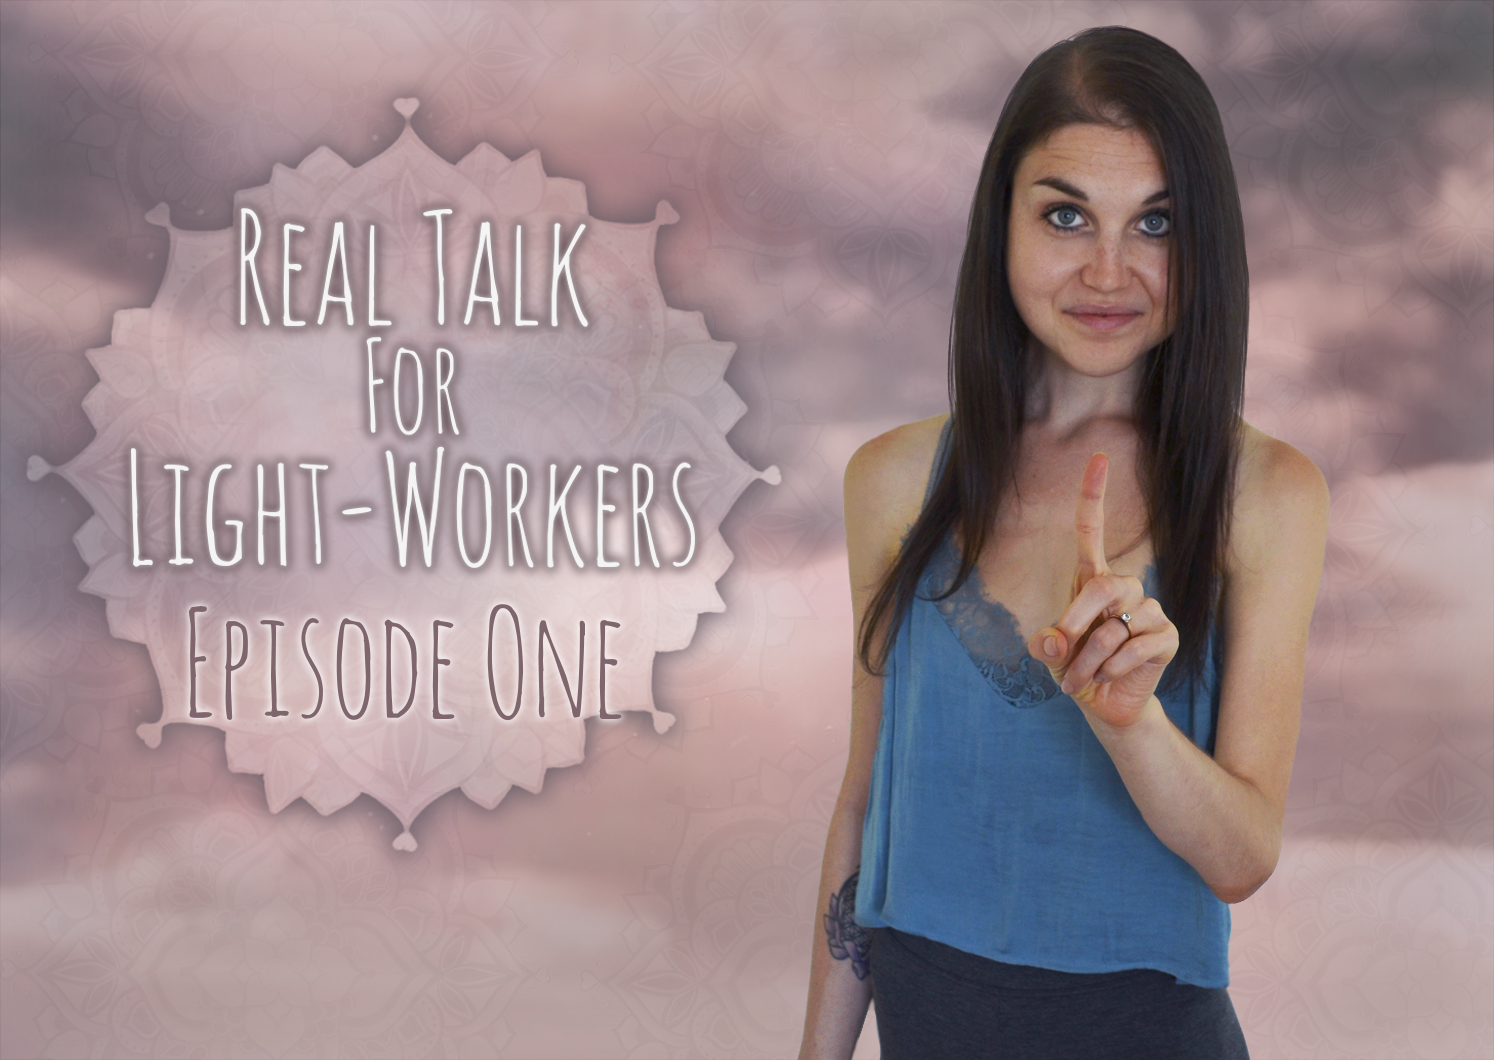 Real Talk For Light-Workers. Episode ONE